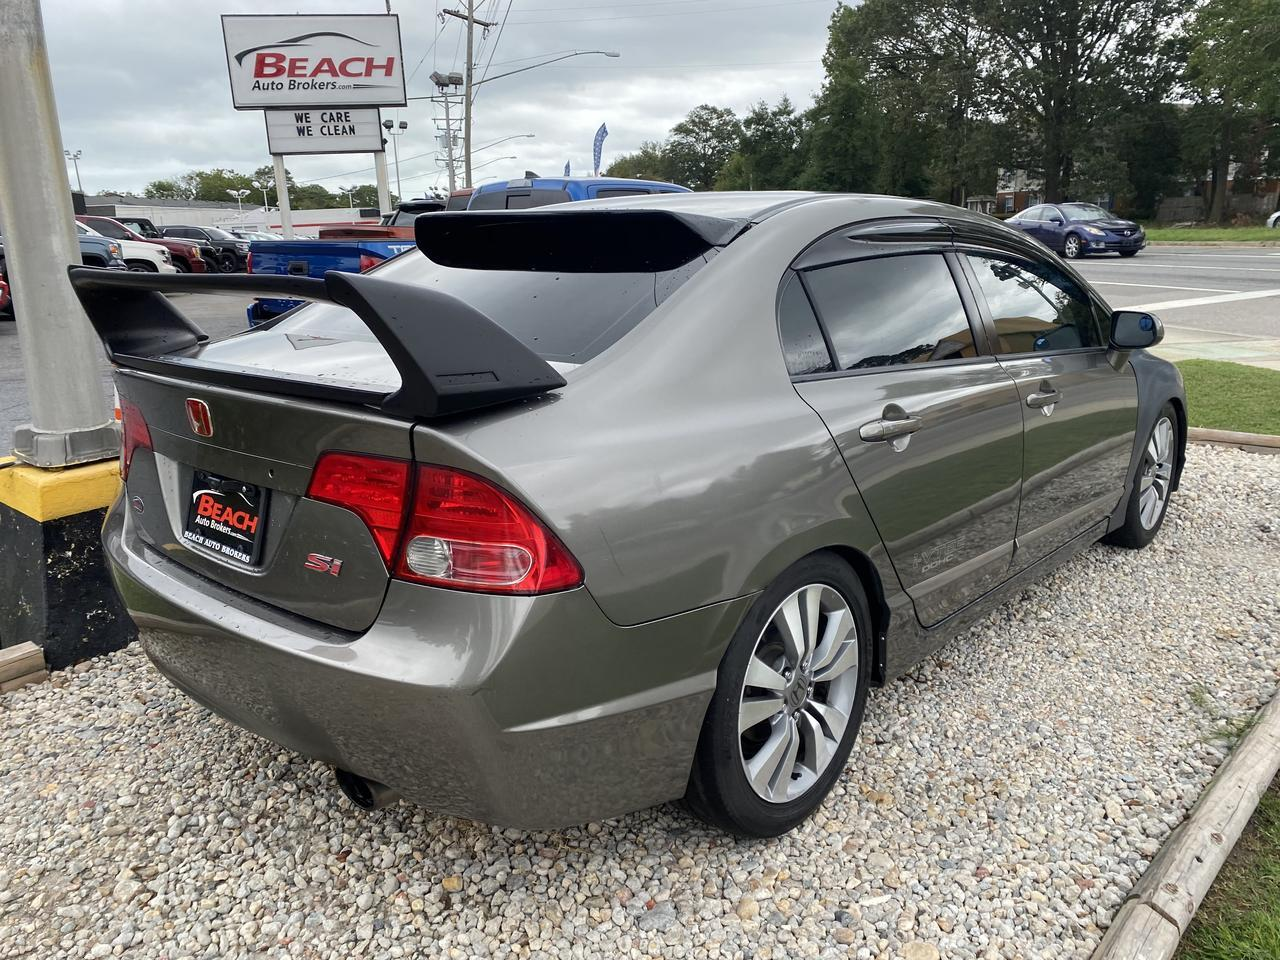 2007 HONDA CIVIC SI, WHOLESALE TO THE PUBLIC, AUX/USB PORT, A/C, CRUISE CONTROL, LOCAL VA VEHICLE! Norfolk VA